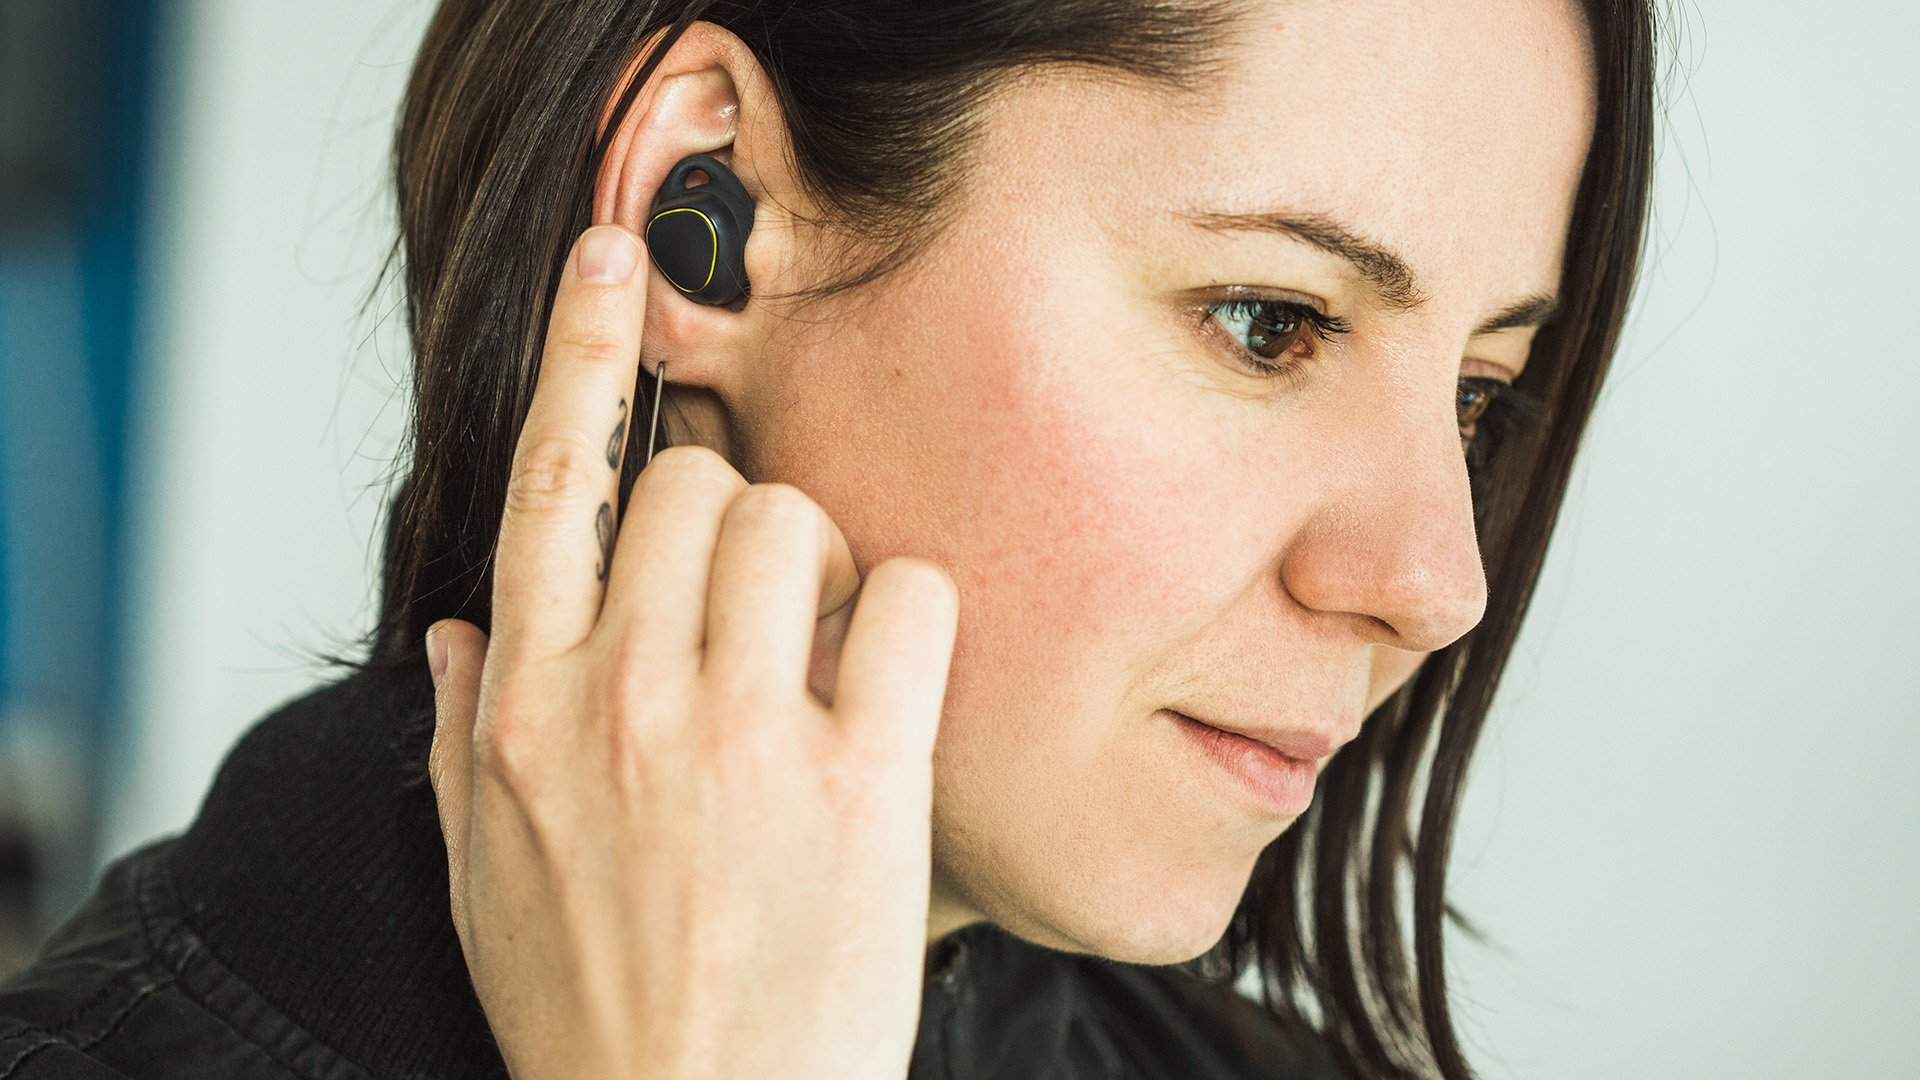 Samsung Iconx 2020 Review.Samsung Gear Iconx Review Burning Ears Androidpit